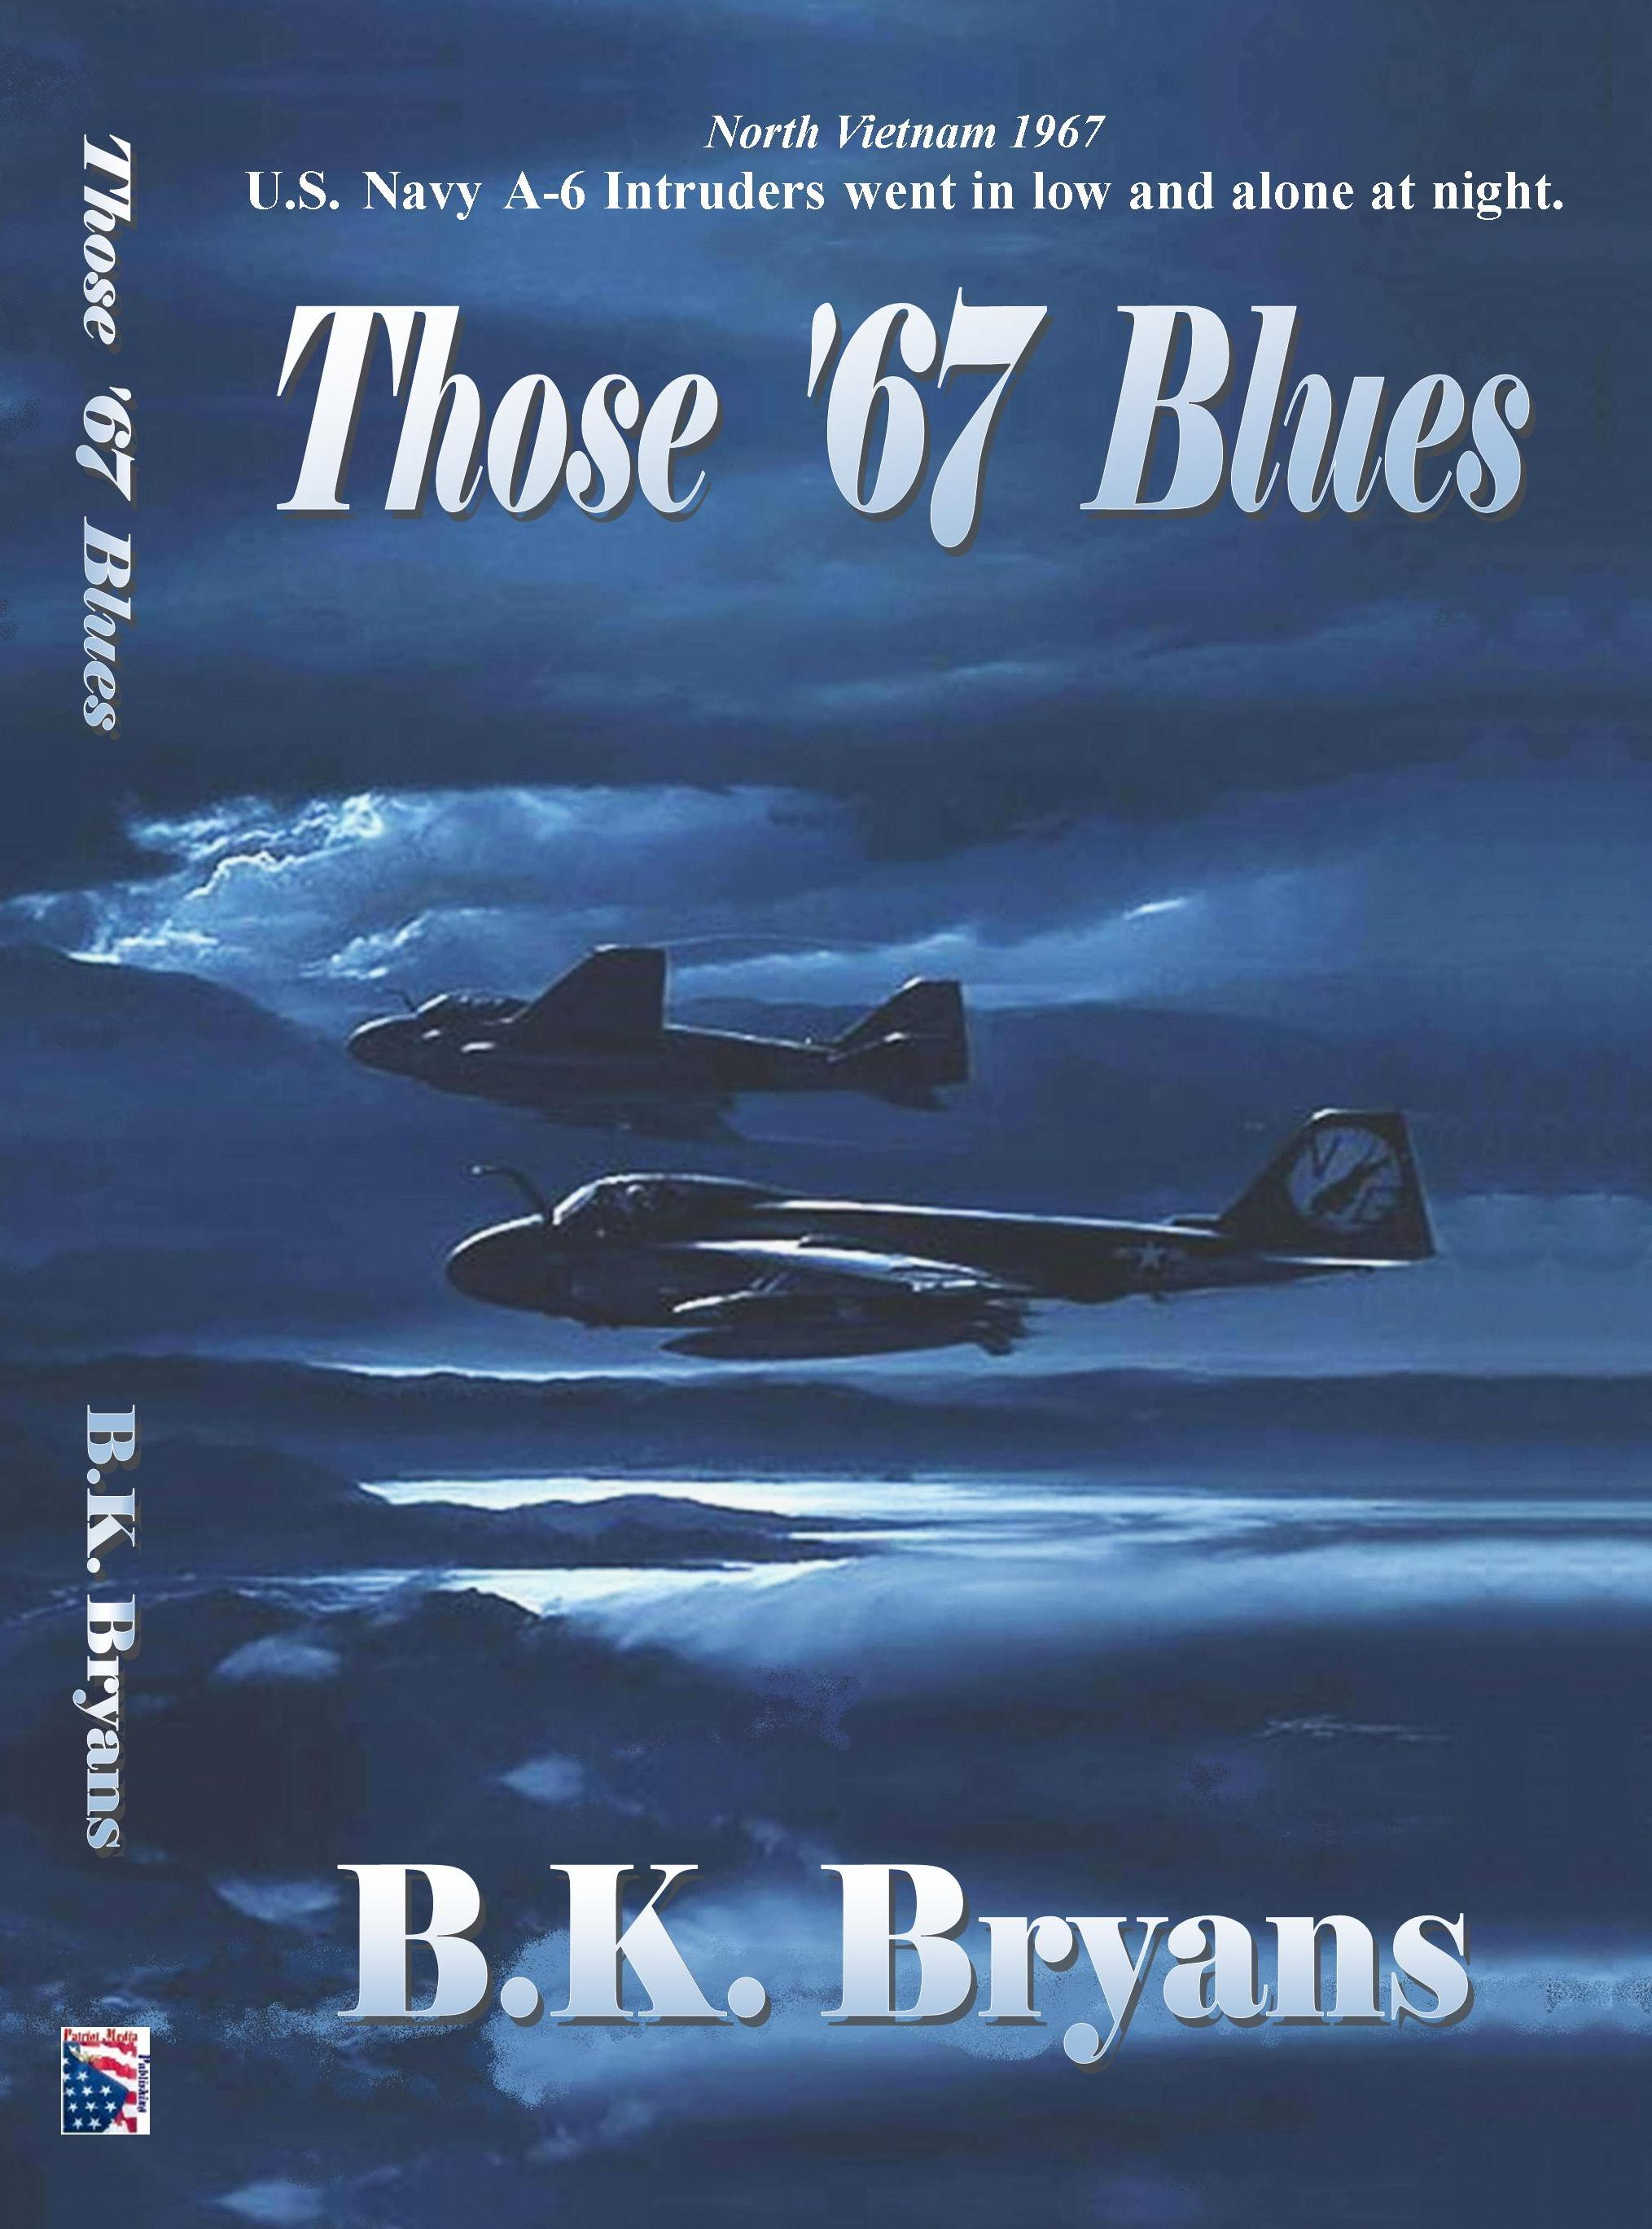 Those '67 Blues by B.K. Bryans